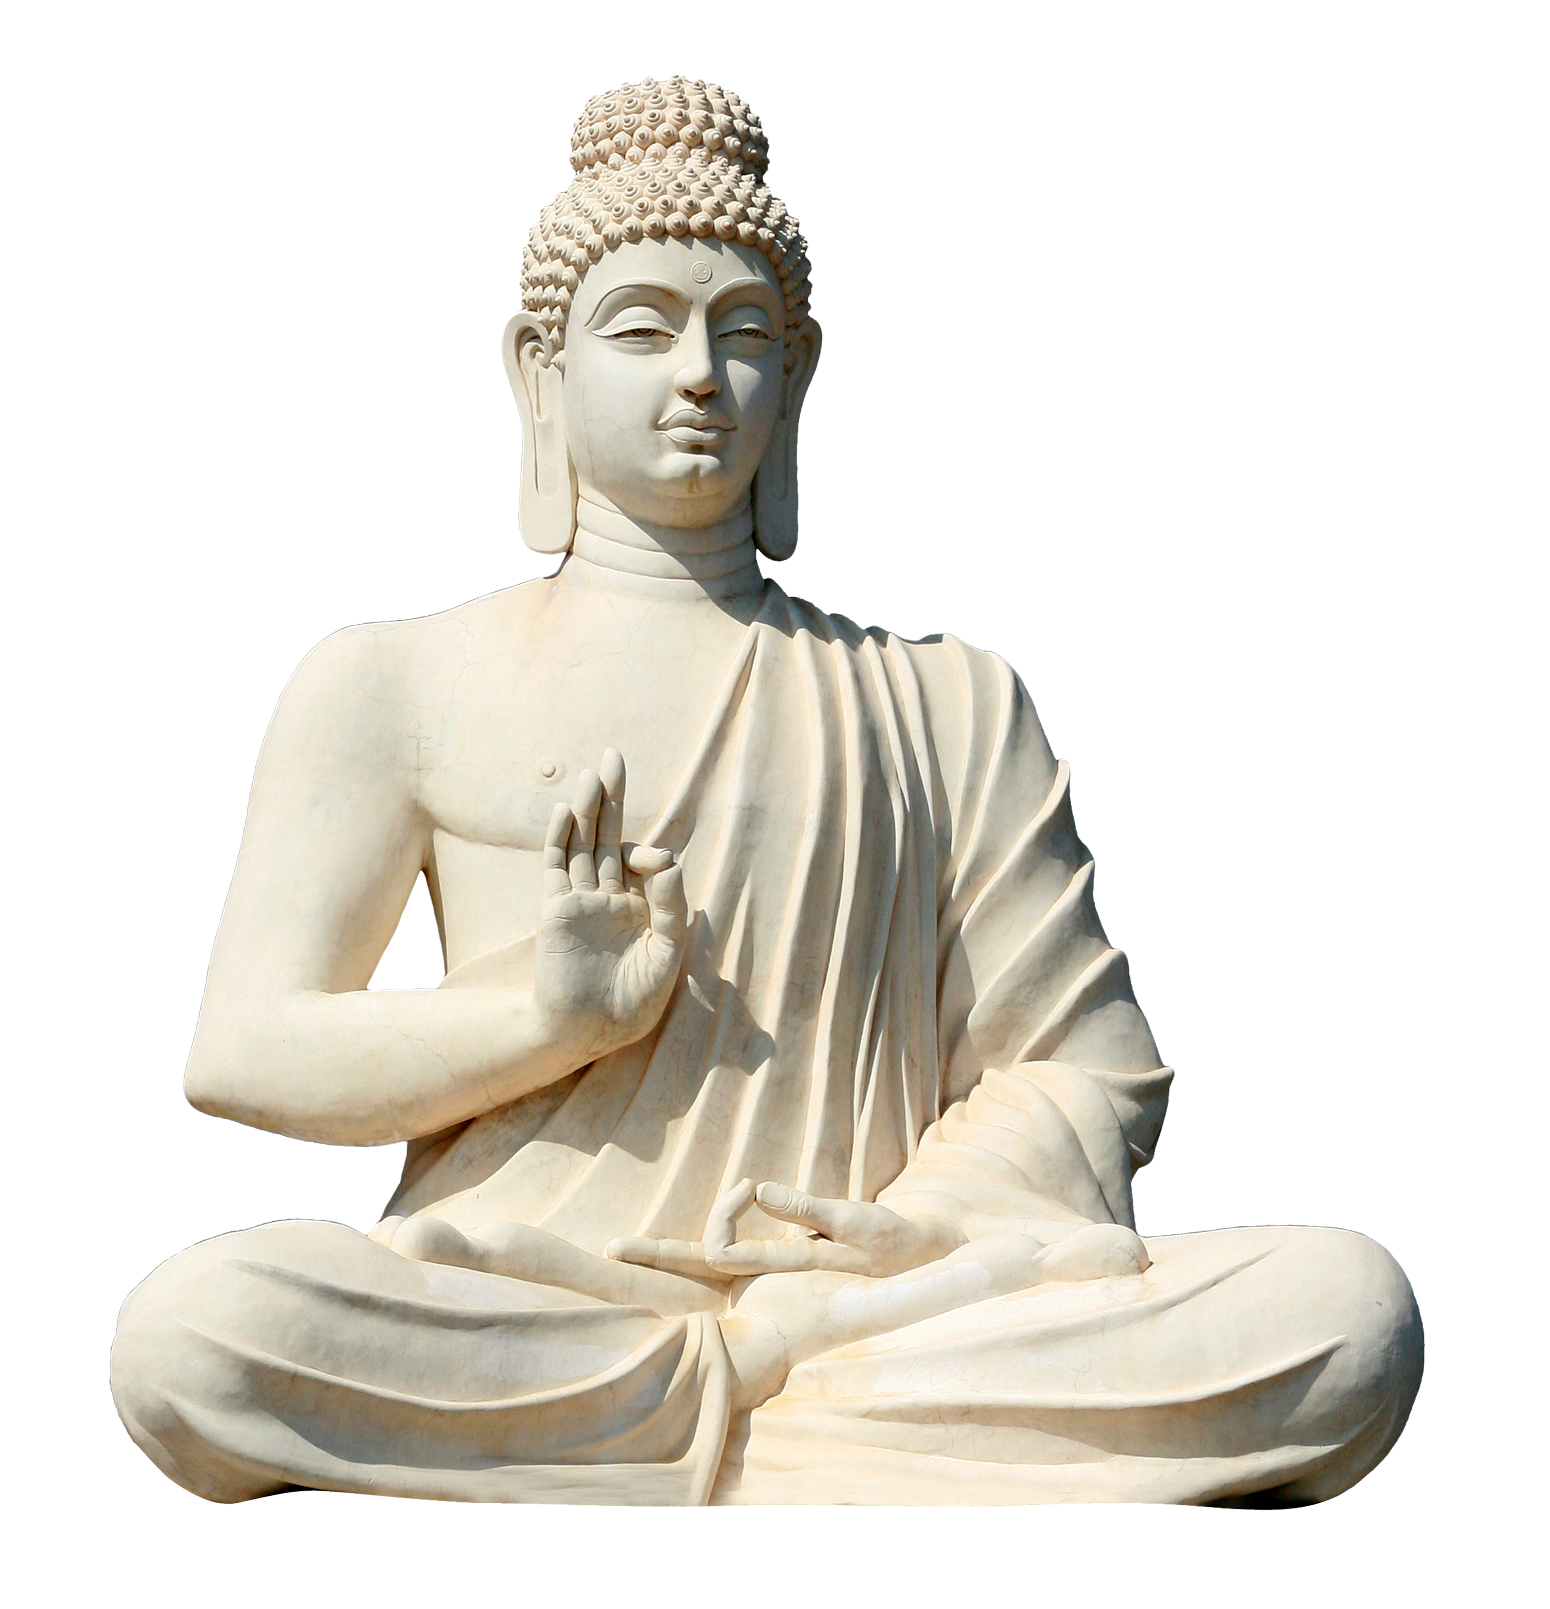 Buddha PNG Images Transparent Free Download.